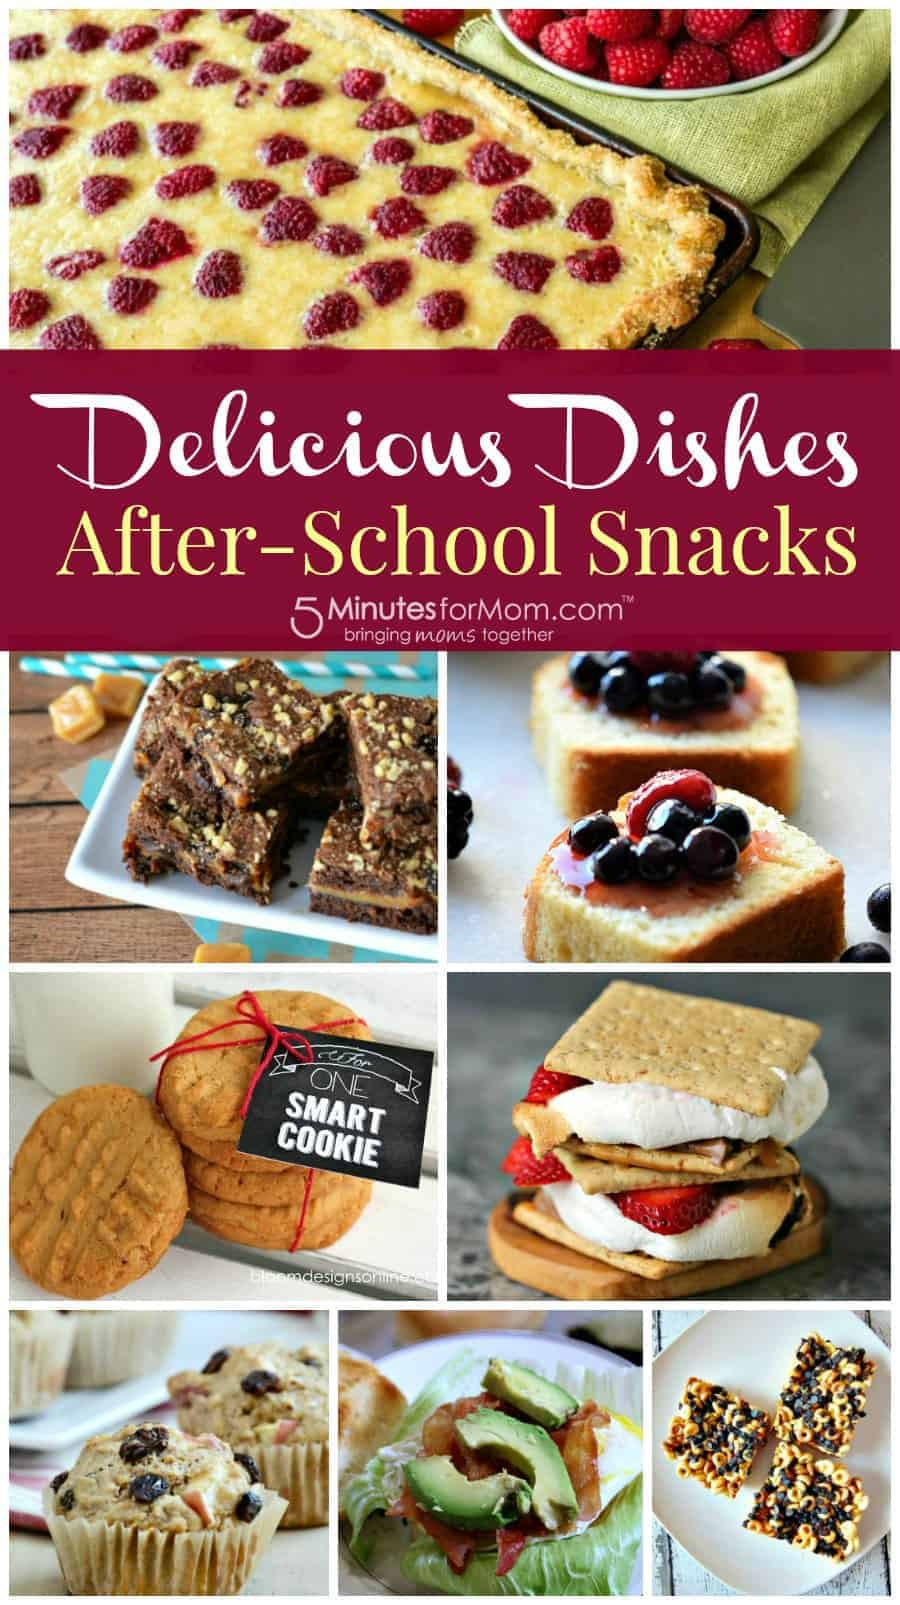 Delicious Dishes - After school snacks recipes